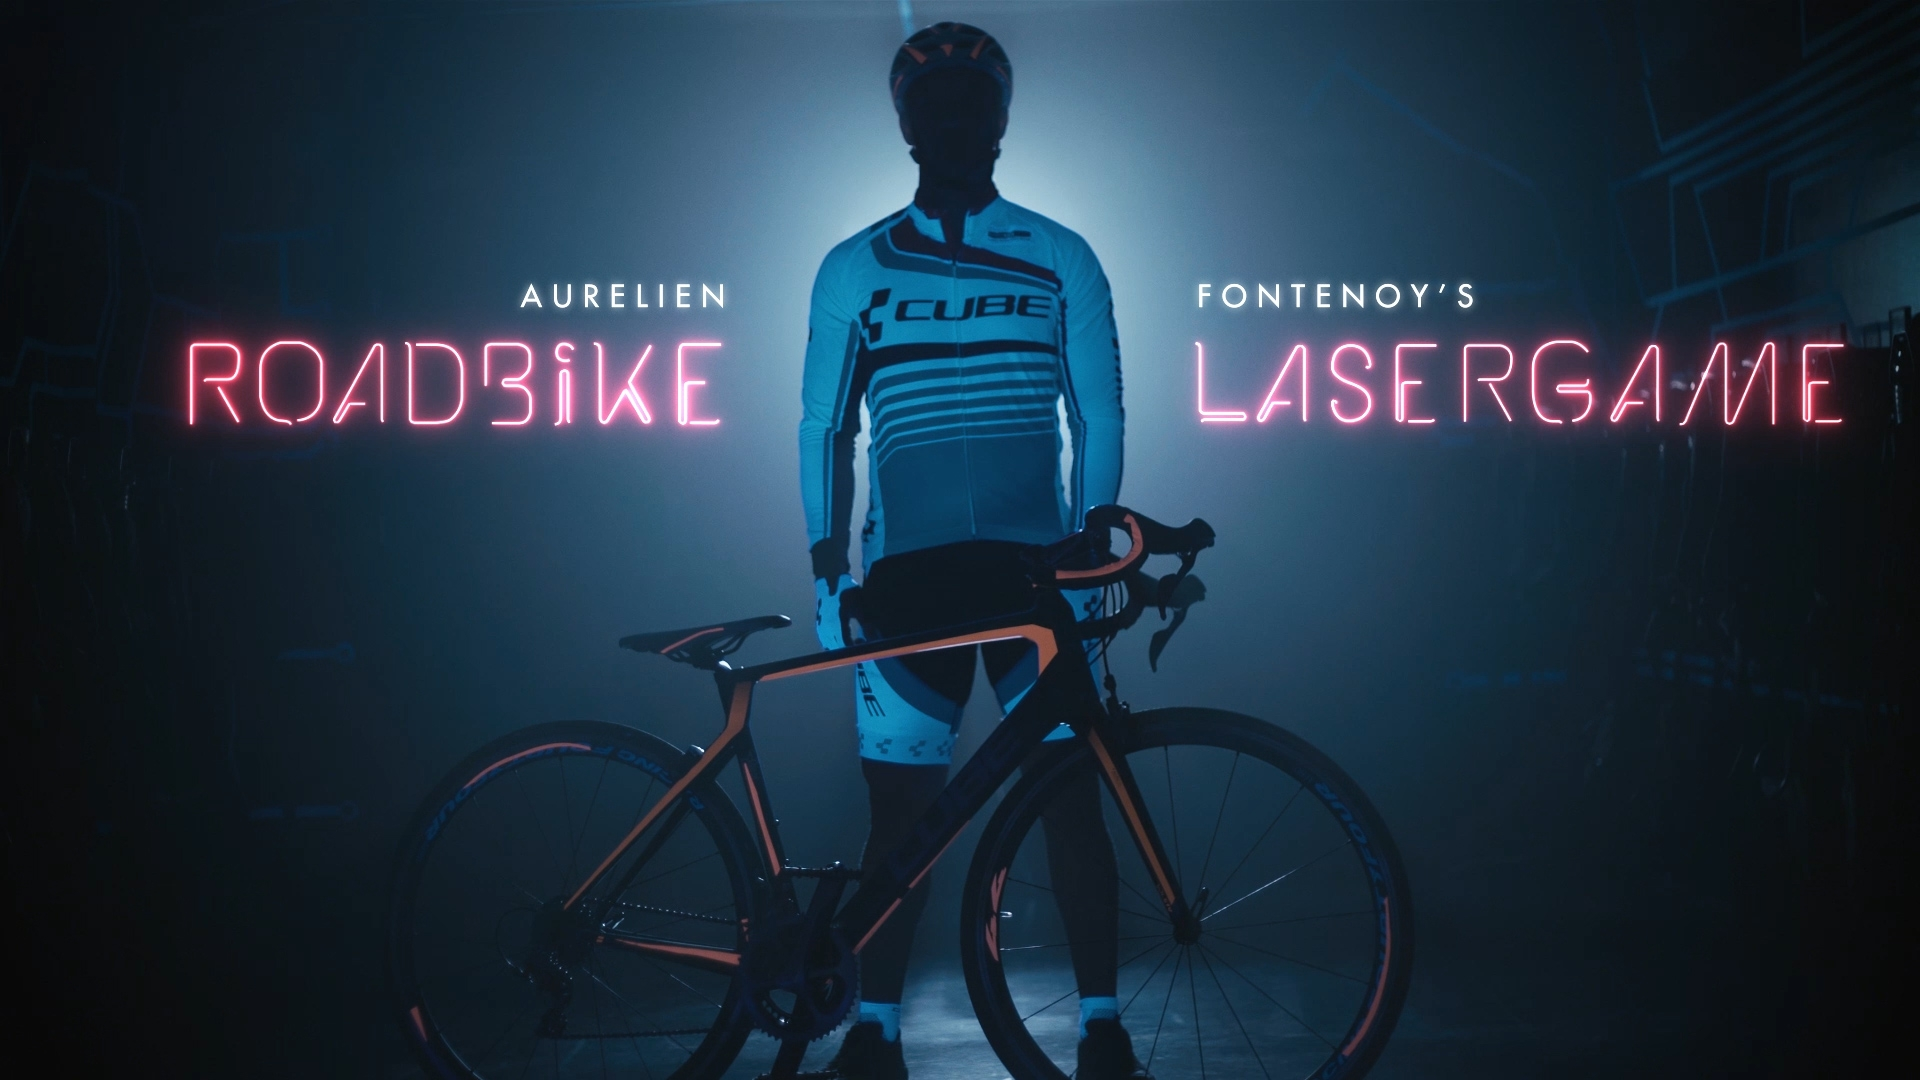 Aurélien Fontenoy - Course poursuite au Laser Game